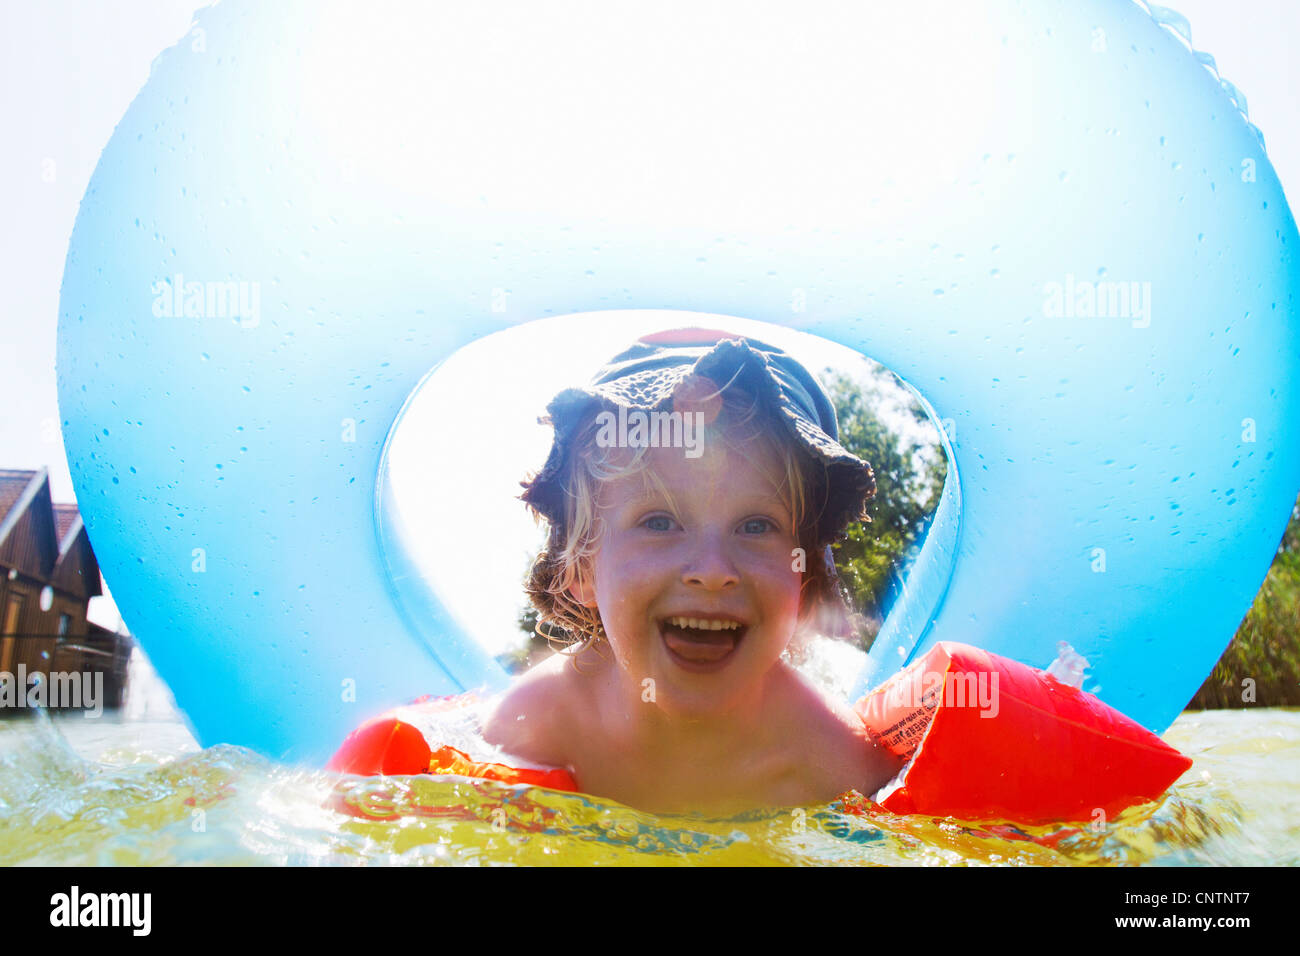 Boy playing with inner tube in pool - Stock Image